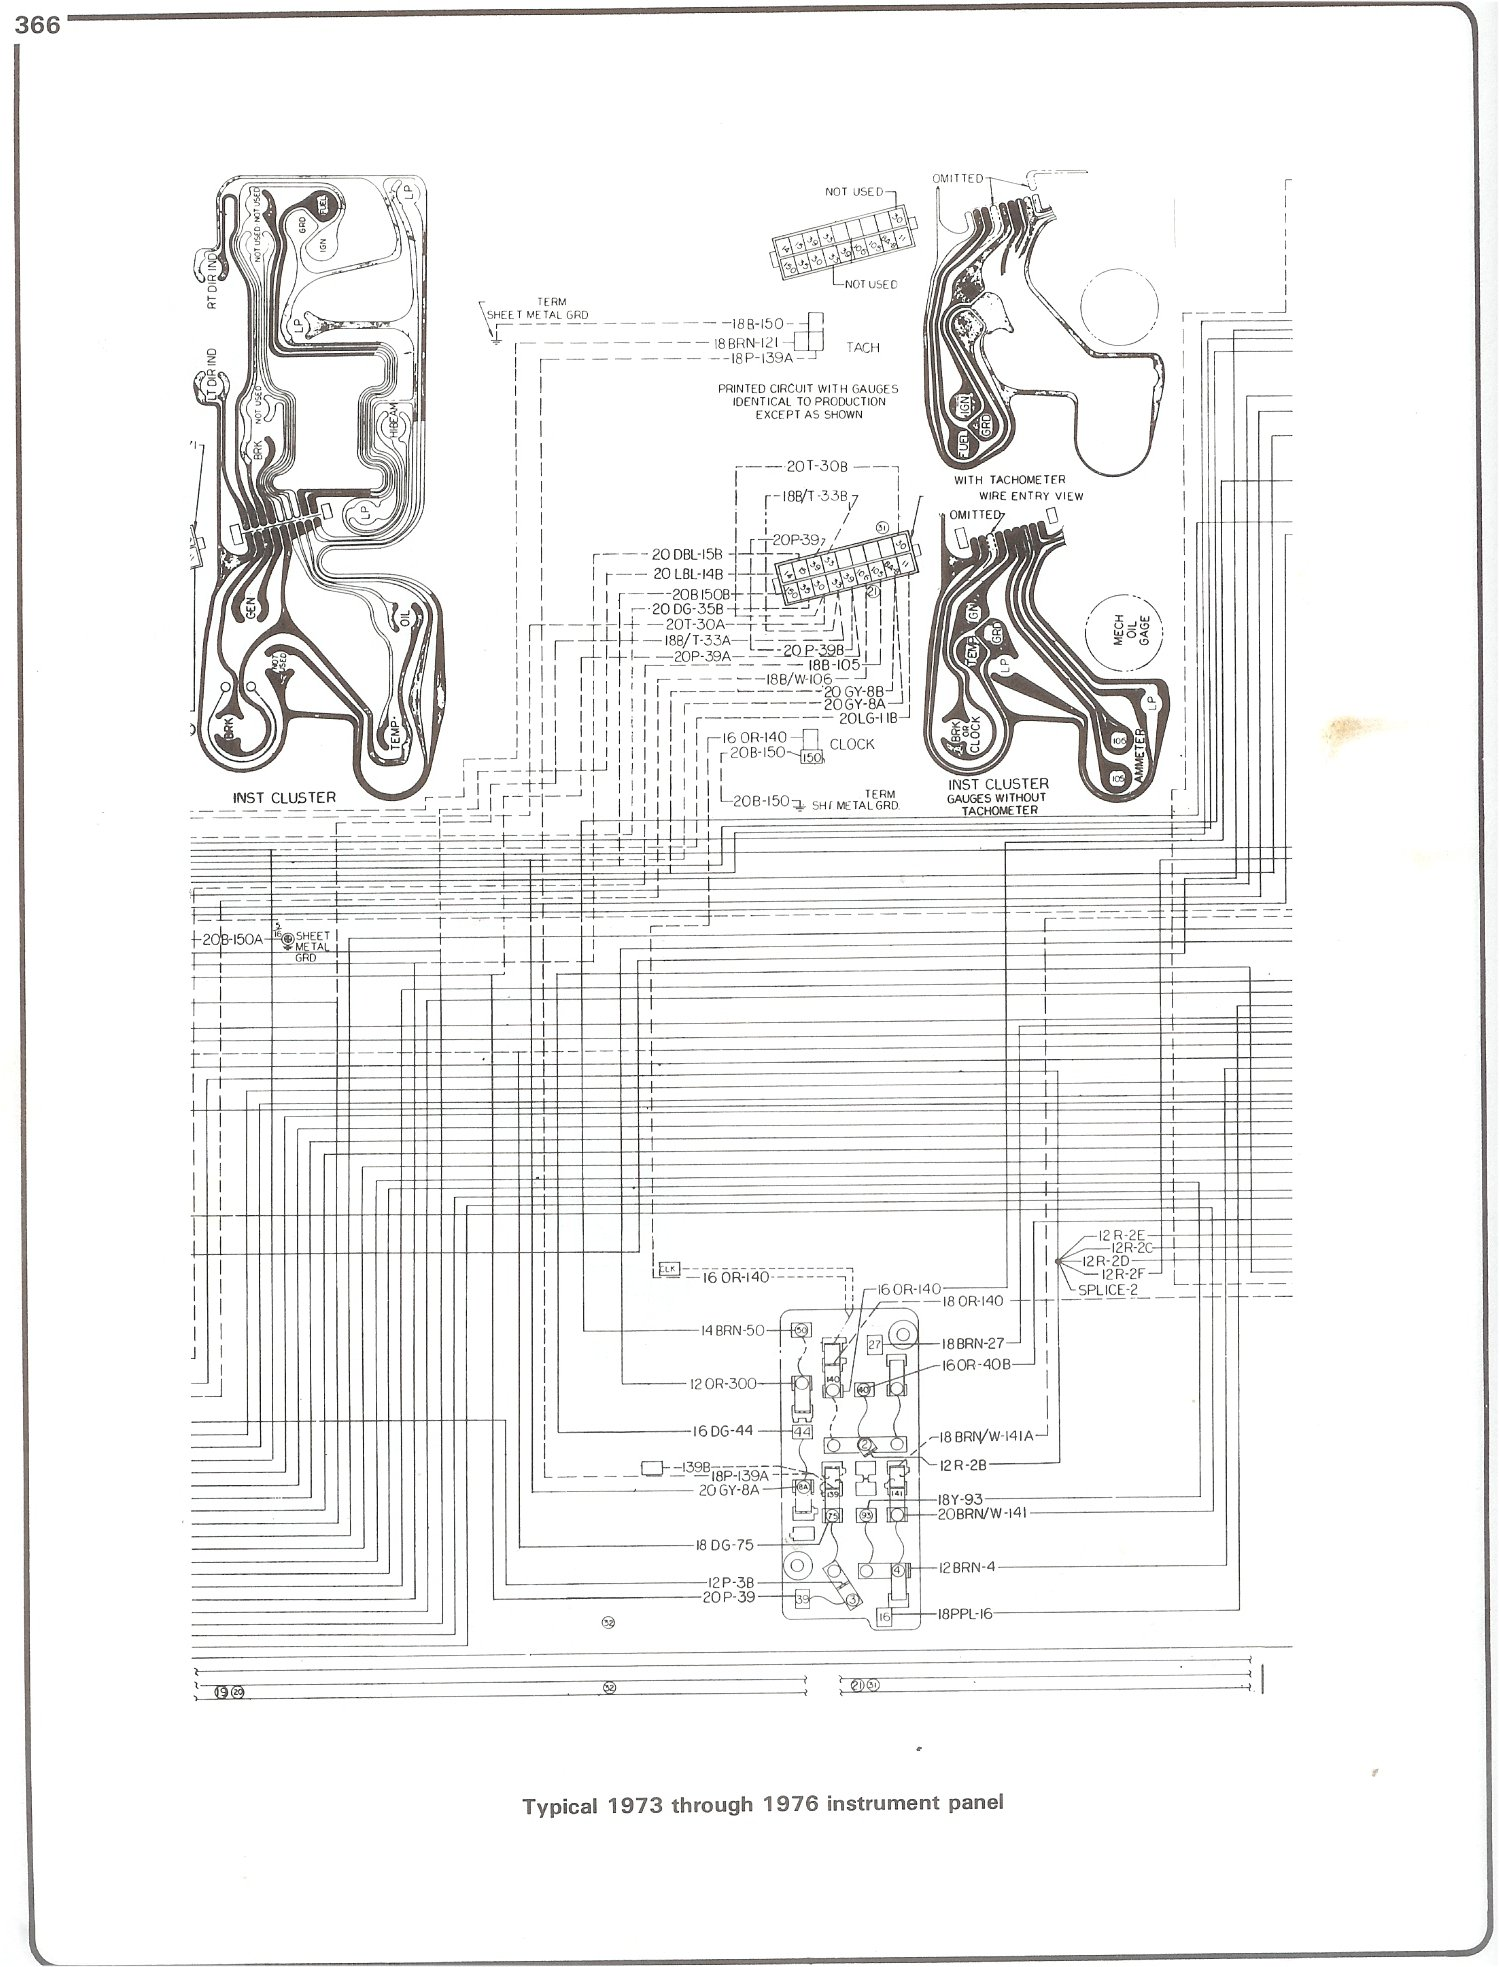 Electrical Wiring Diagram 1979 Gmc C60 Worksheet And 2005 Chevy Colorado Radio 35l Chevrolet Complete 73 87 Diagrams Rh Forum 87chevytrucks Com Gm Dash Sierra